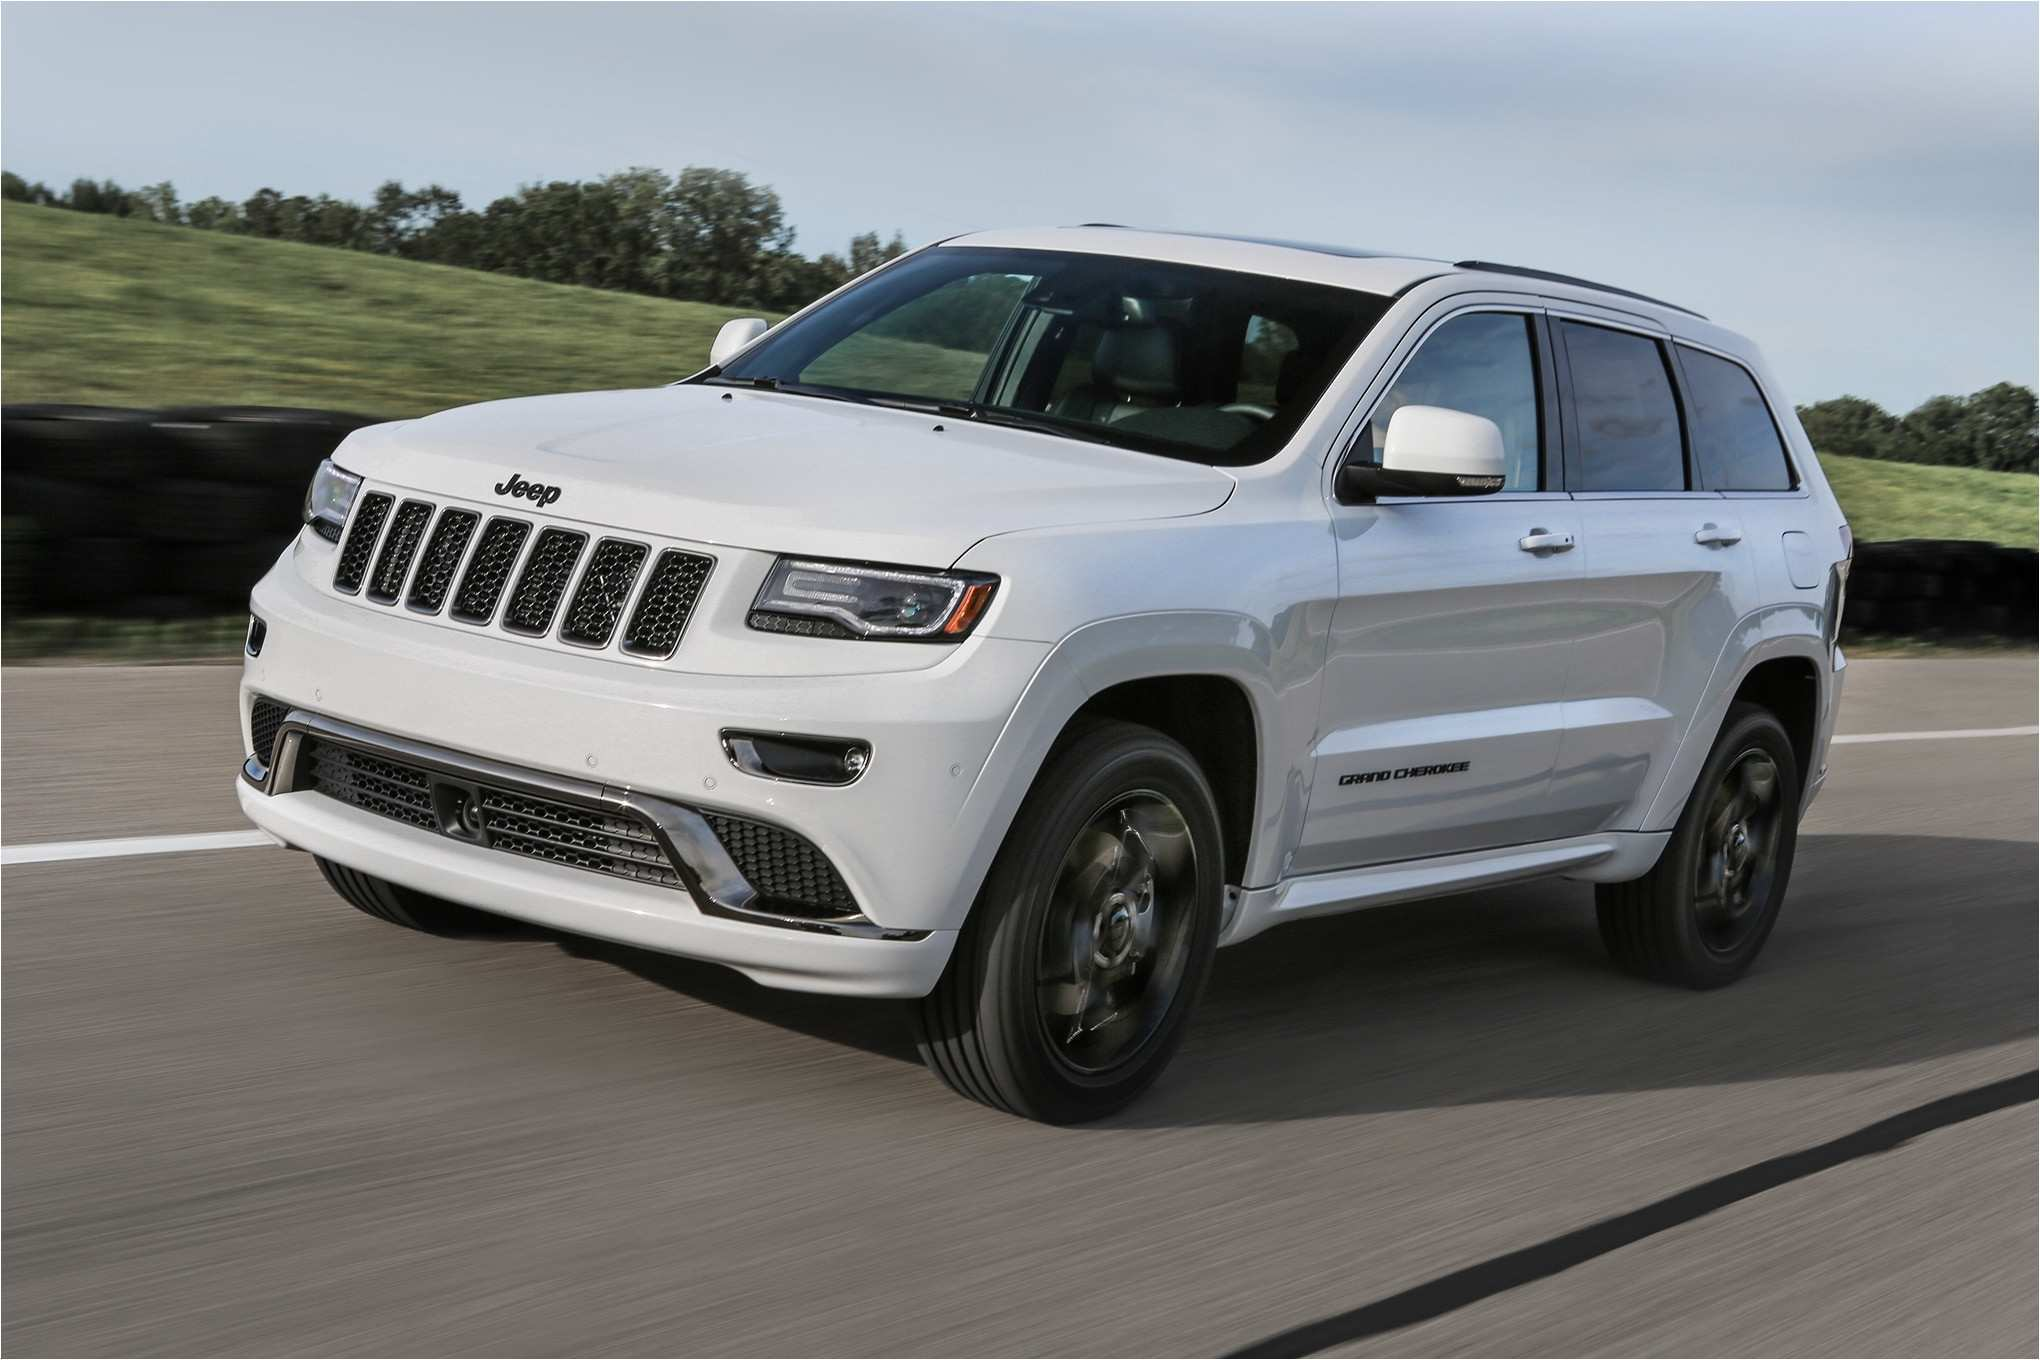 30 New 2020 Jeep Cherokee Towing Capacity Ratings with 2020 Jeep Cherokee Towing Capacity